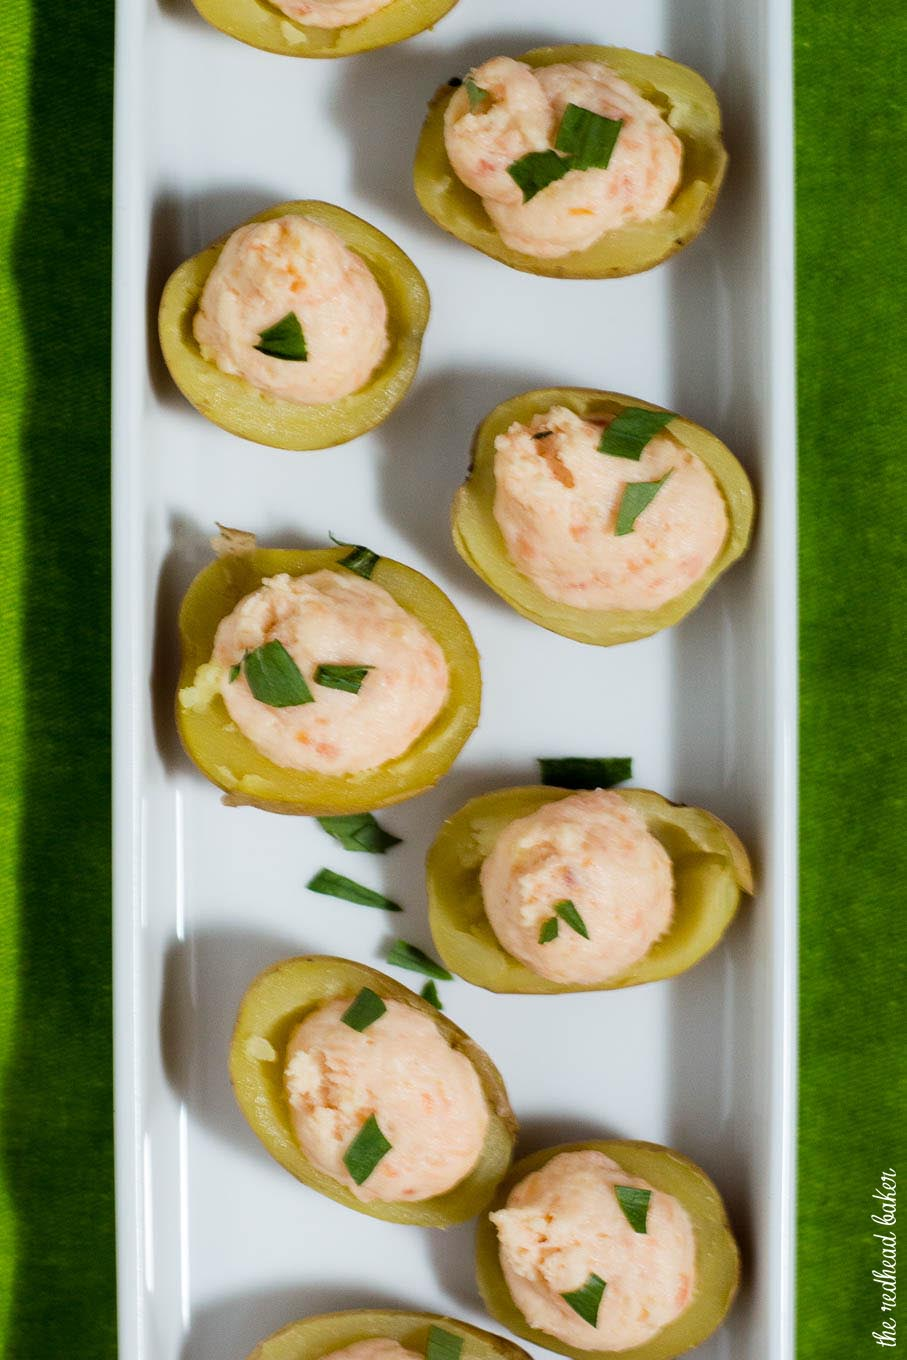 Celebrate St. Patrick's Day with smoked salmon stuffed potatoes. These appetizers are little pots of gold stuffed with delicious filling! #ProgressiveEats